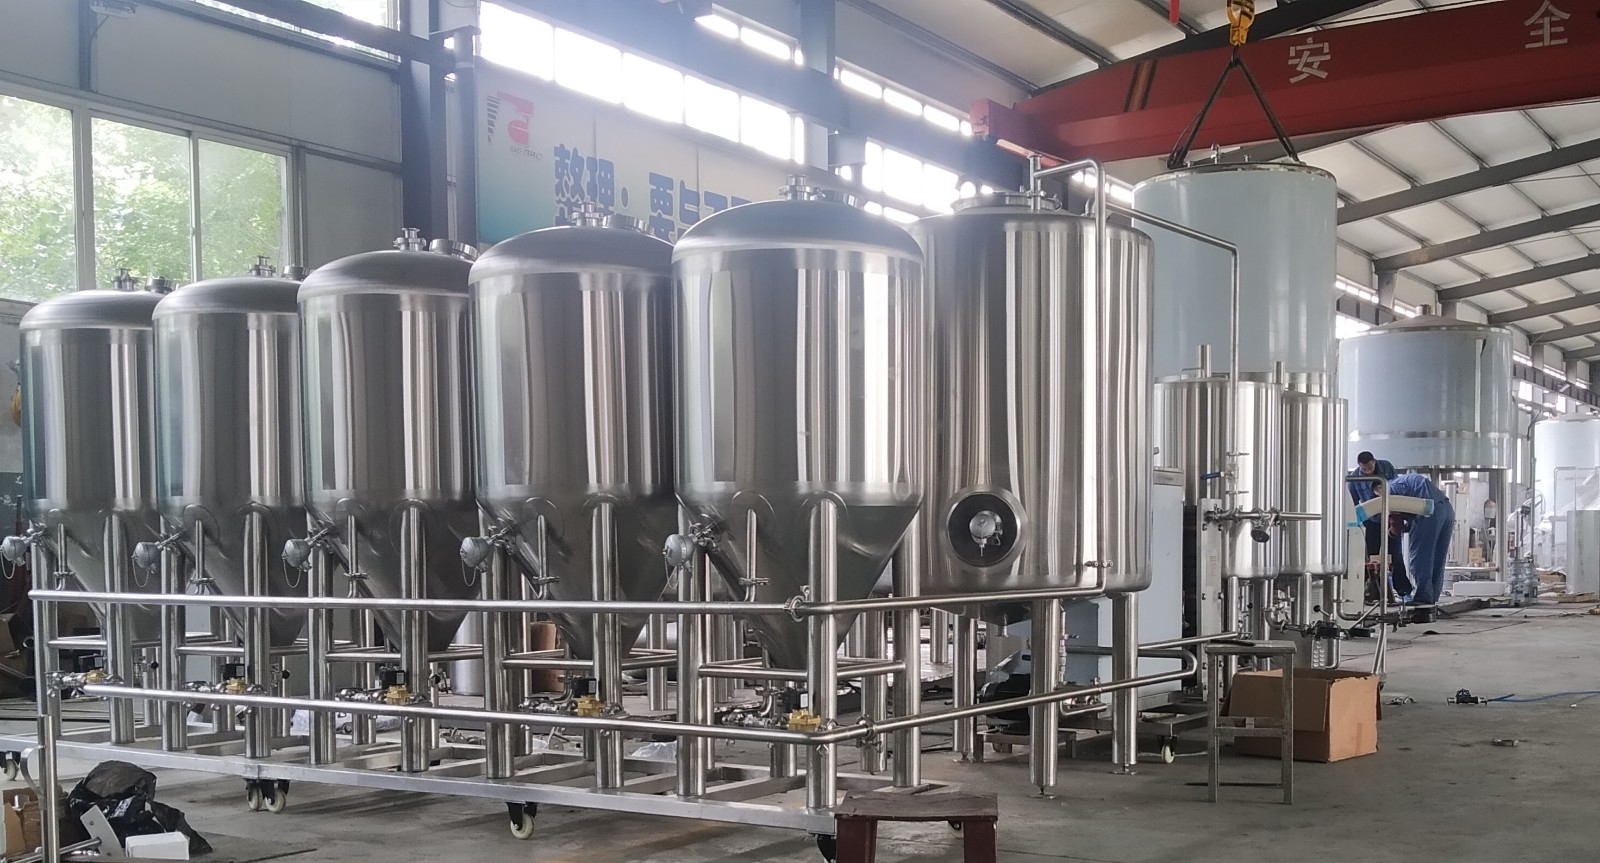 Venezuela professional turnkey beer brewing system of stainless steel from China factory 2020 W1